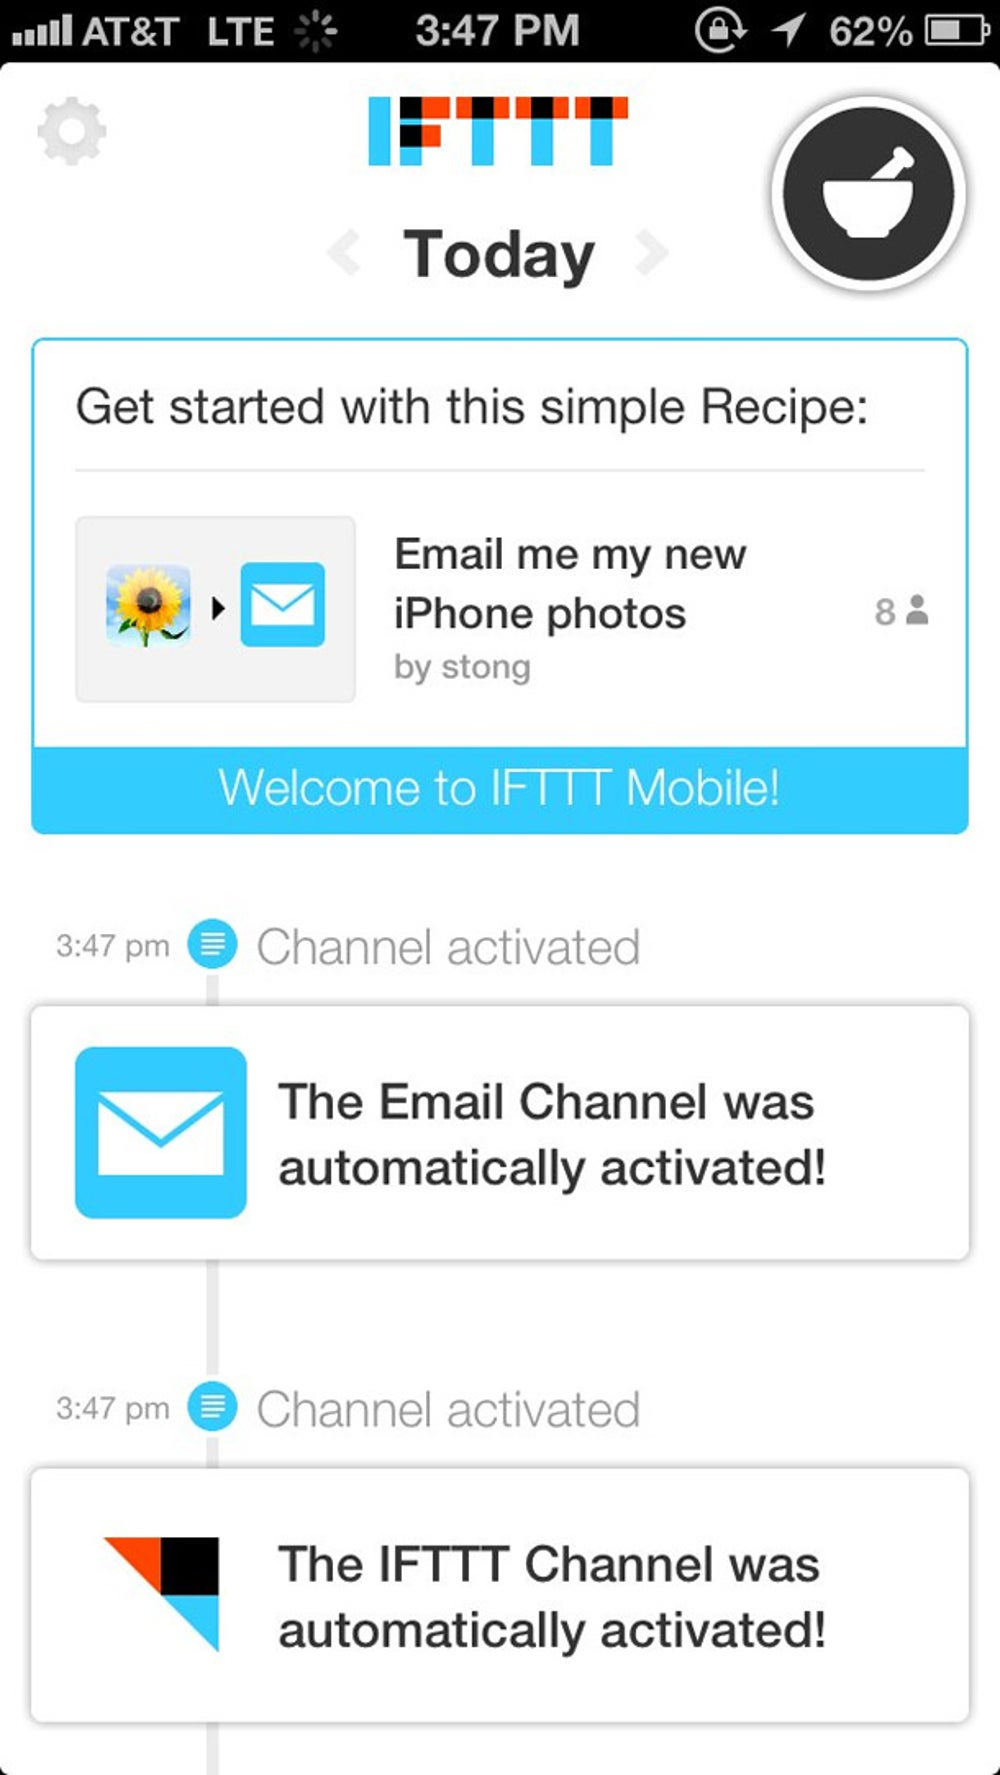 Each day, IFTTT selects specific recipes to be spotlighted in your feed. This is a great way to discover new ways that you can take advantage of the service.